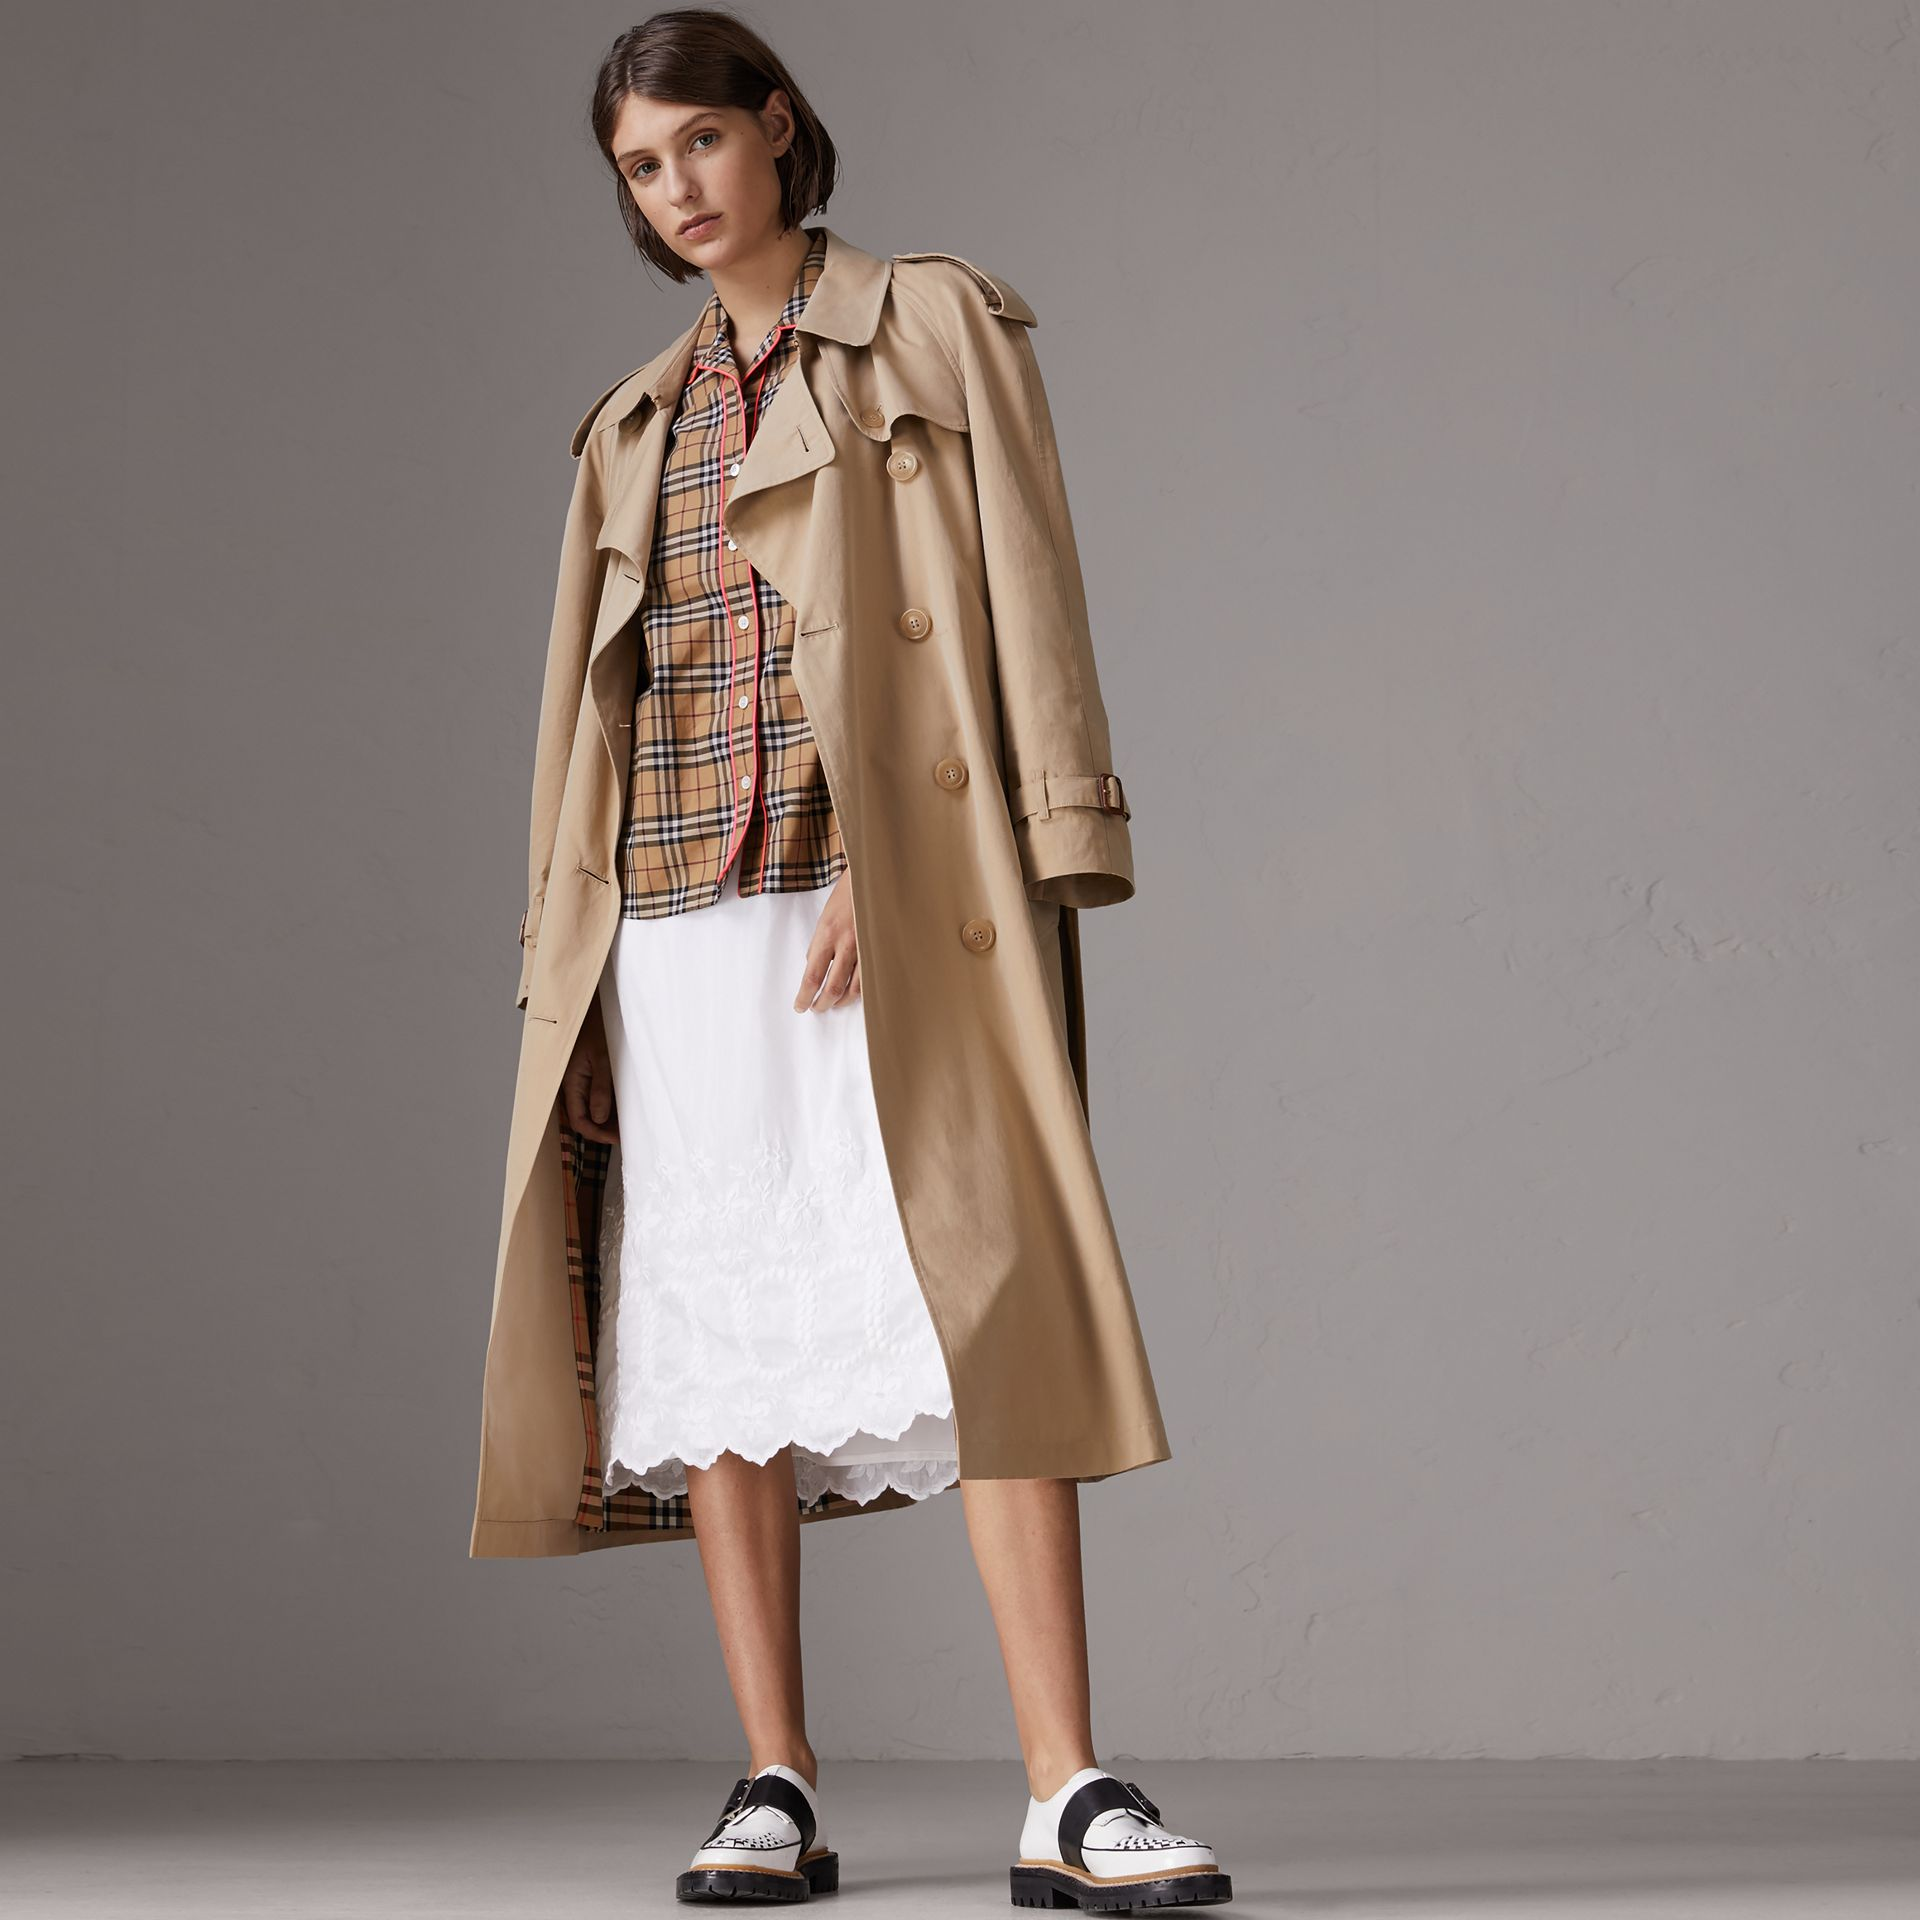 Contrast Piping Vintage Check Pyjama-style Shirt in Camel - Women | Burberry - gallery image 4